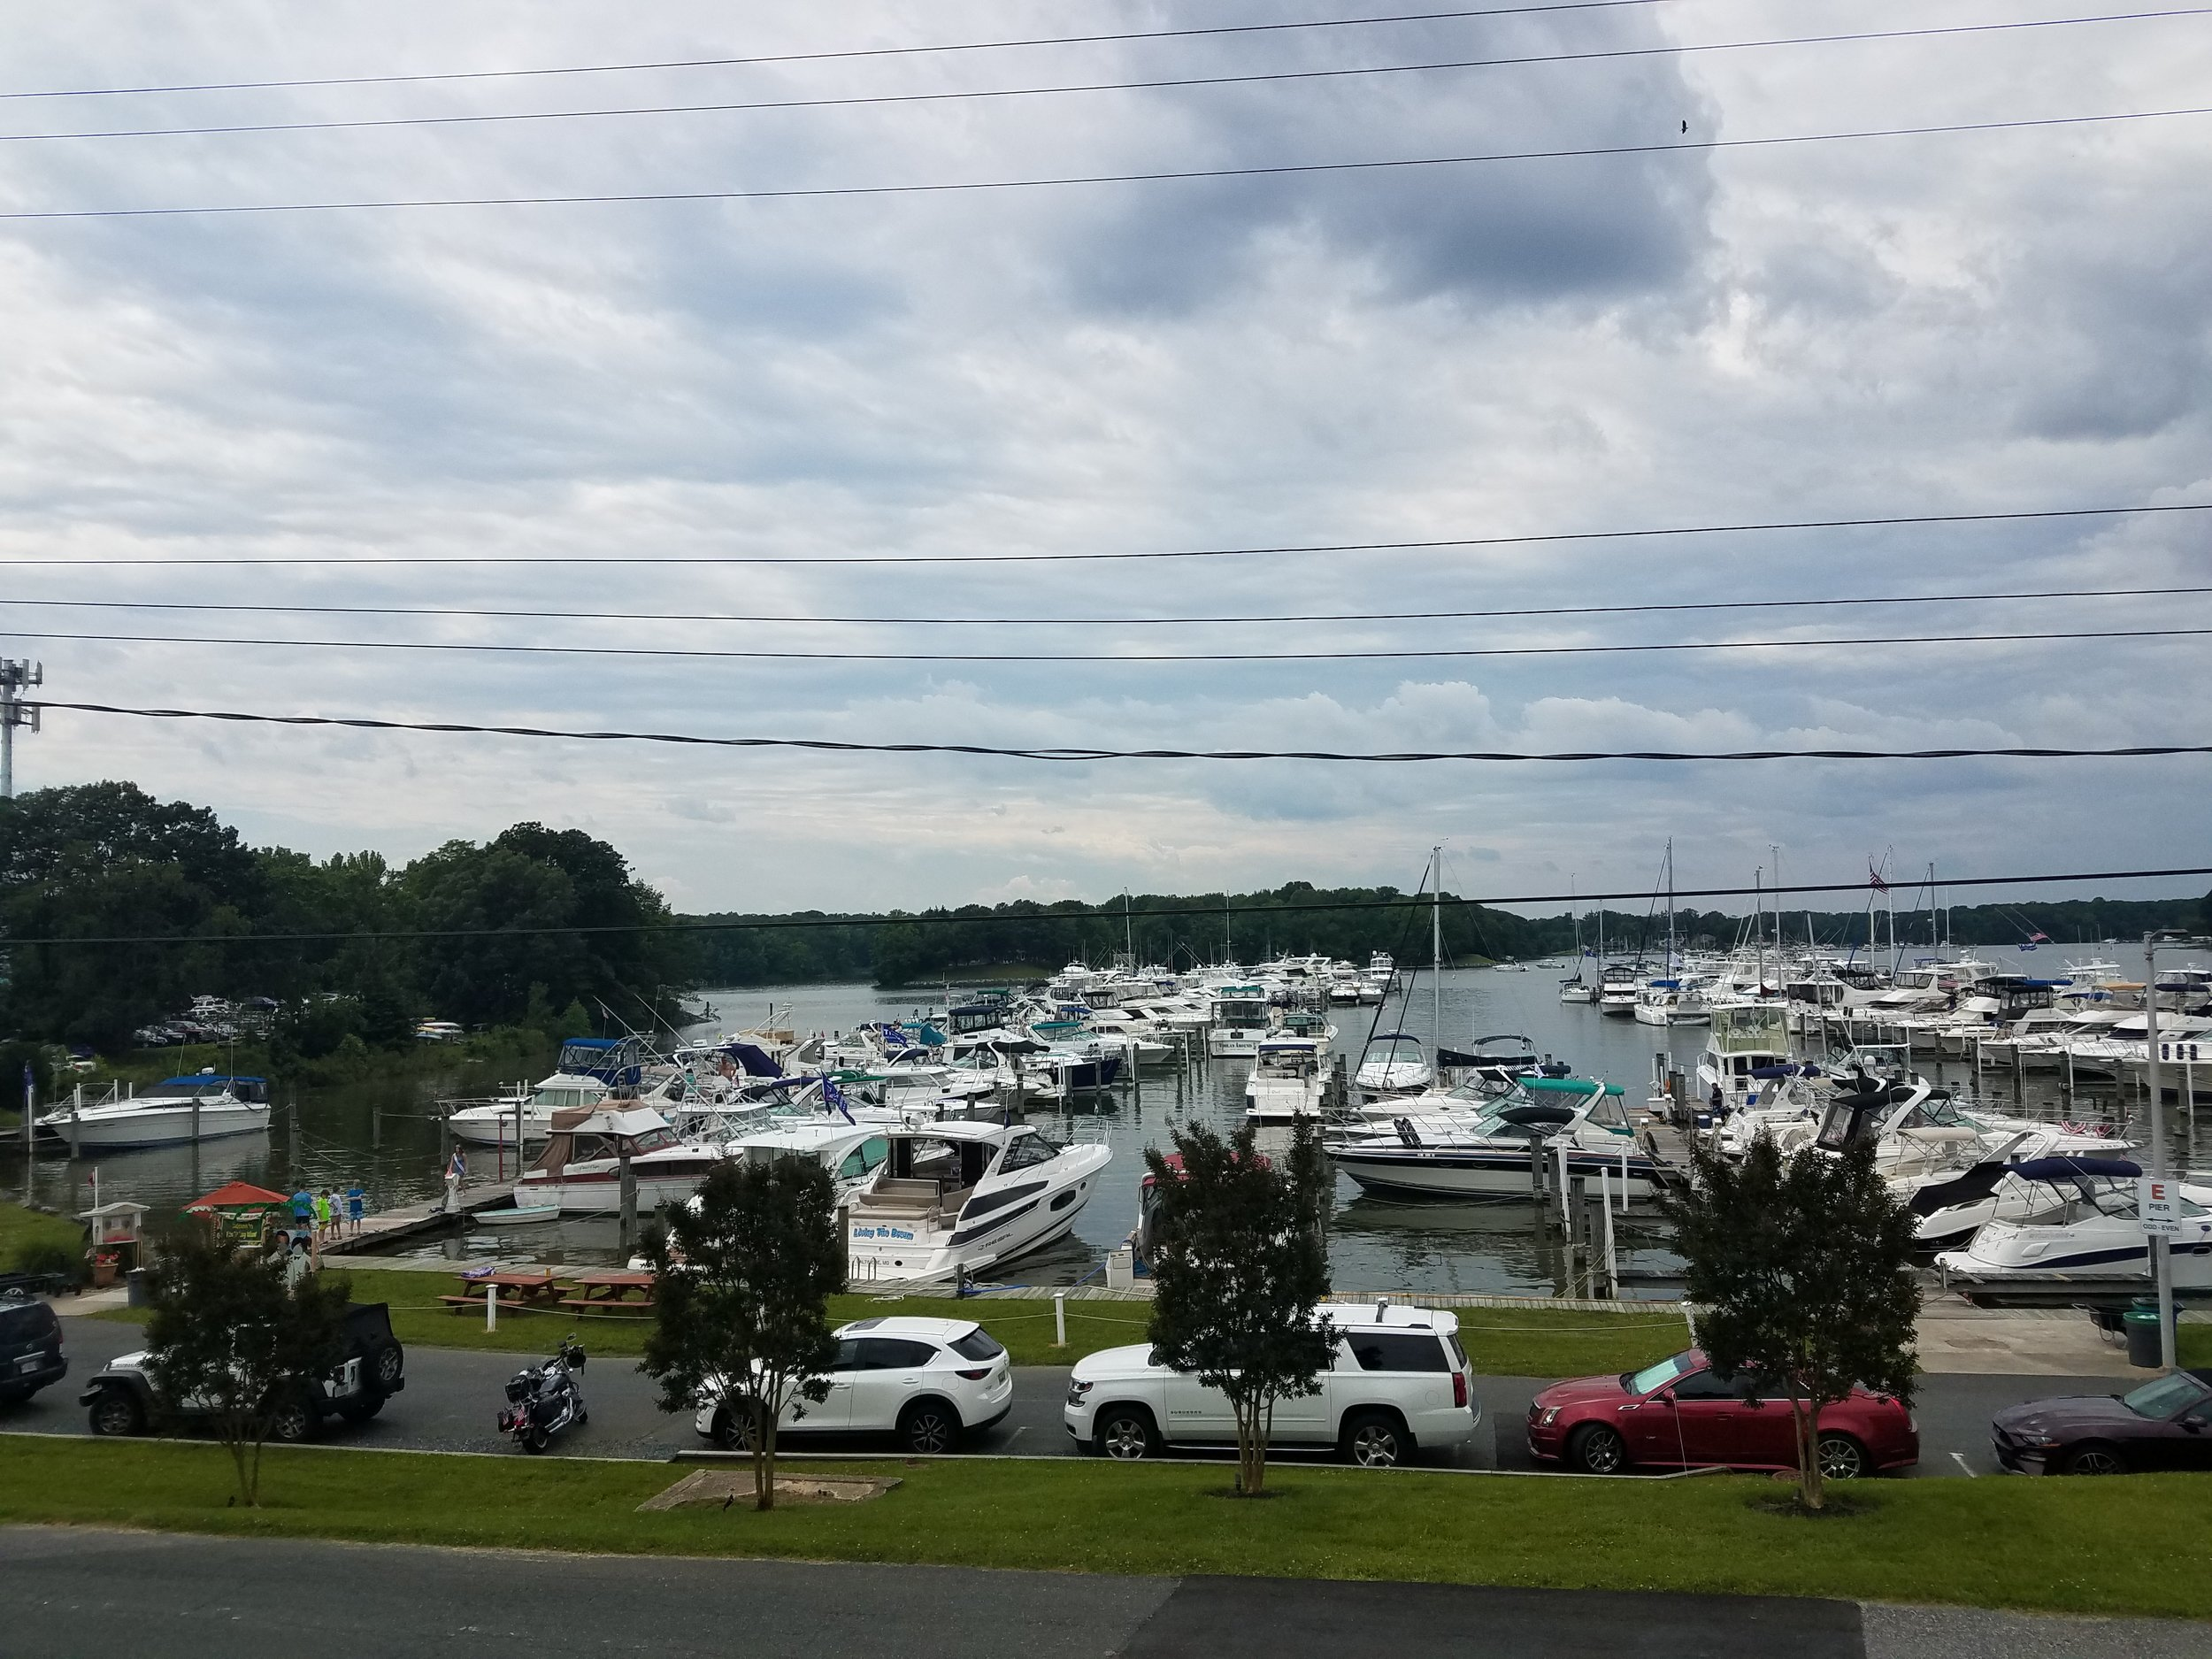 The busy Baltimore Yacht Club Marina